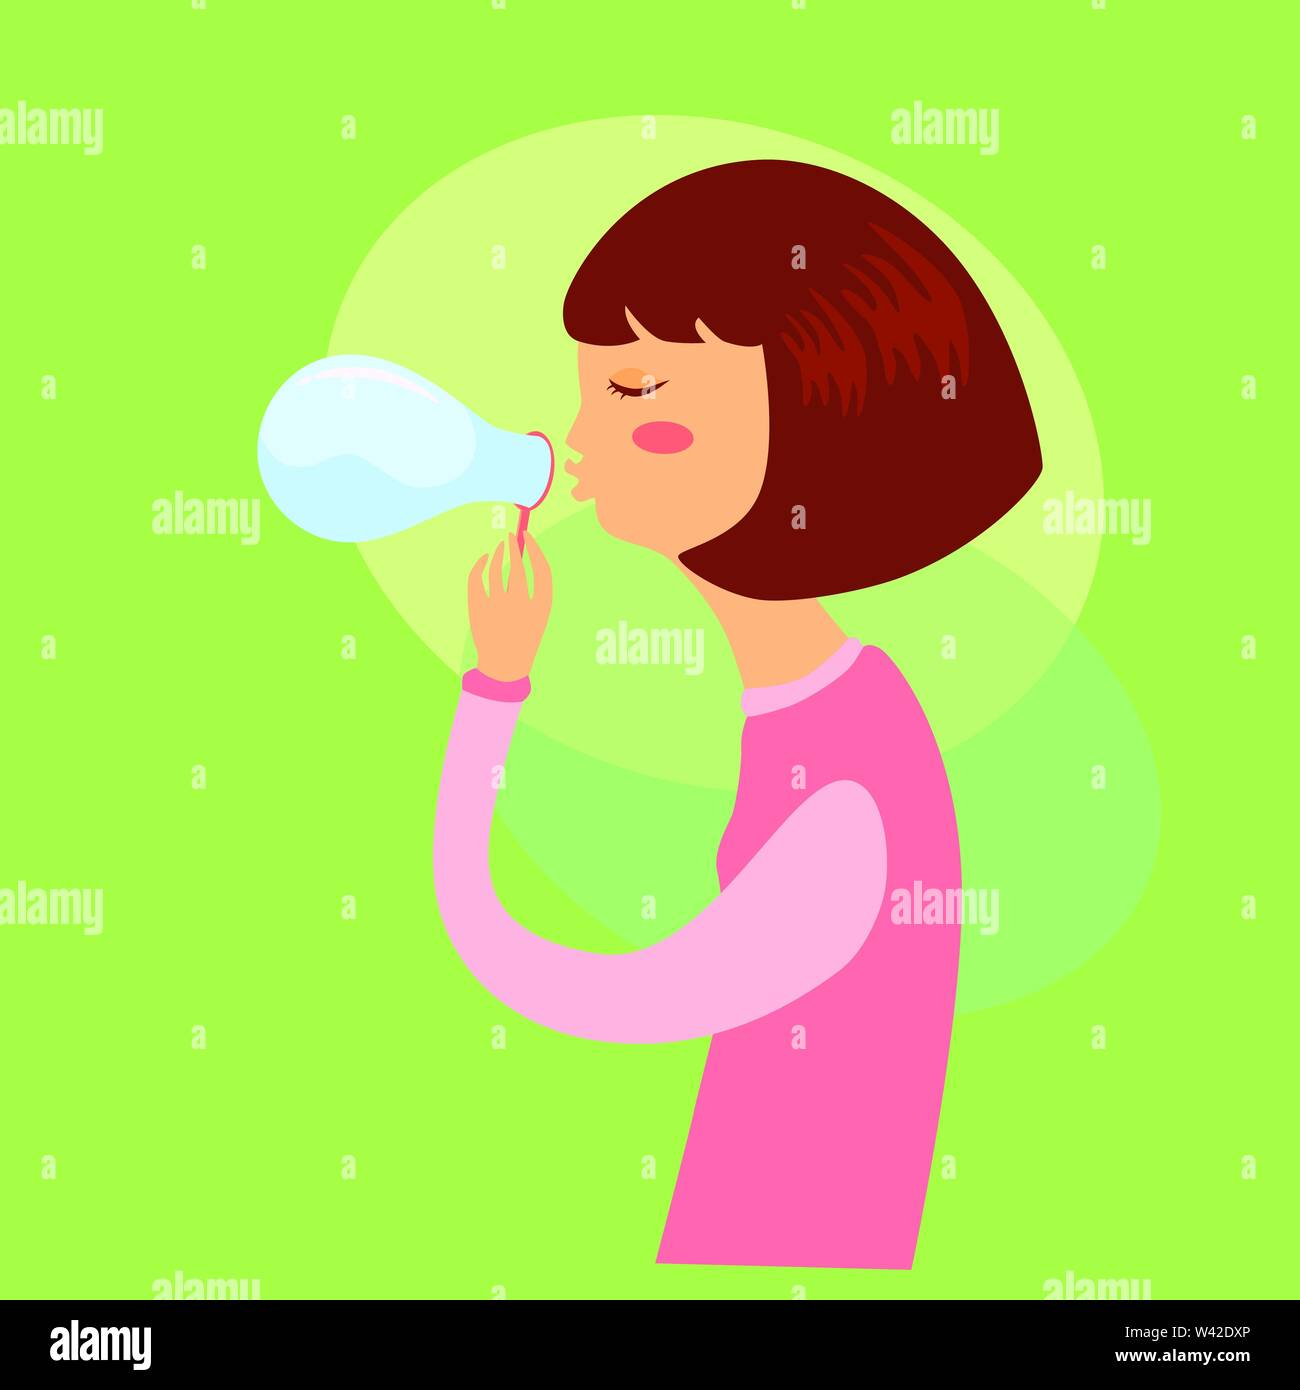 Woman playing soap bubbles. Cute Girl blowing Soap bubble isolated on green background. - Stock Vector